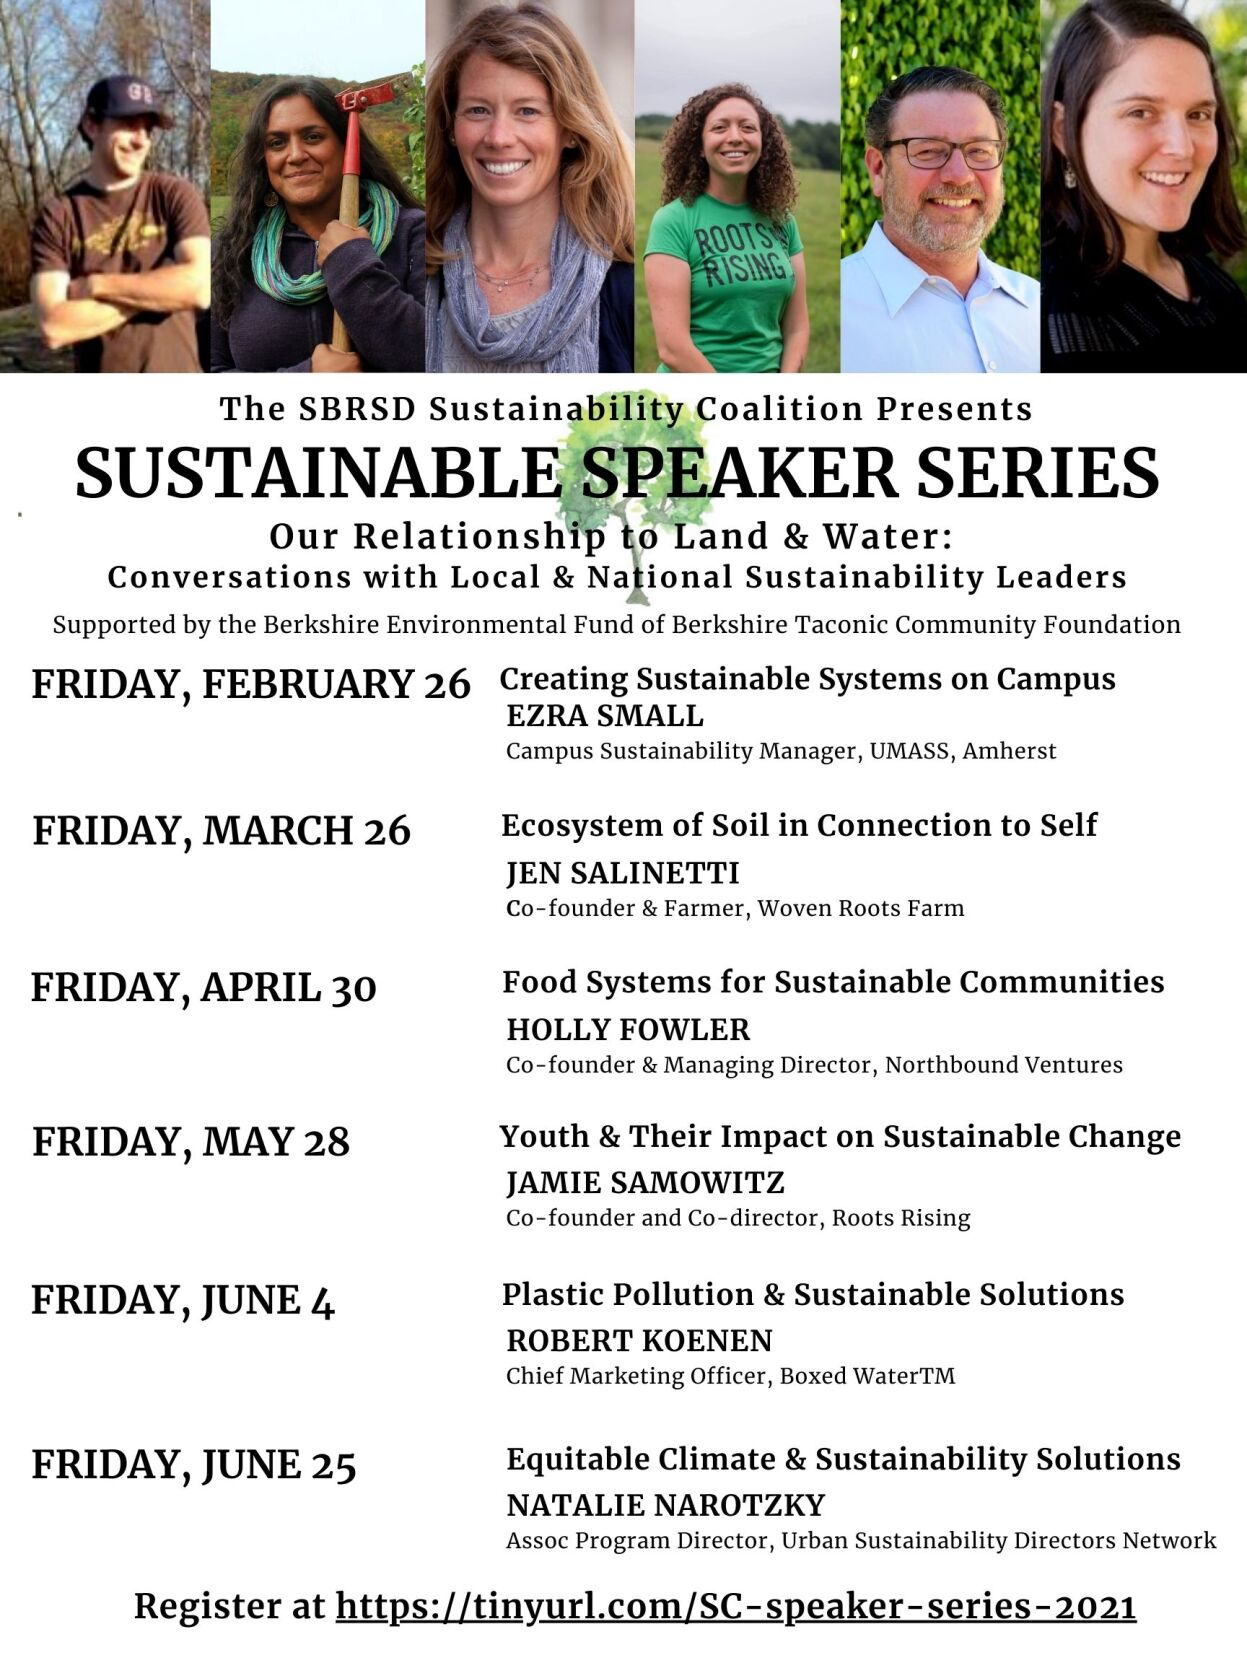 Sustainability speakers